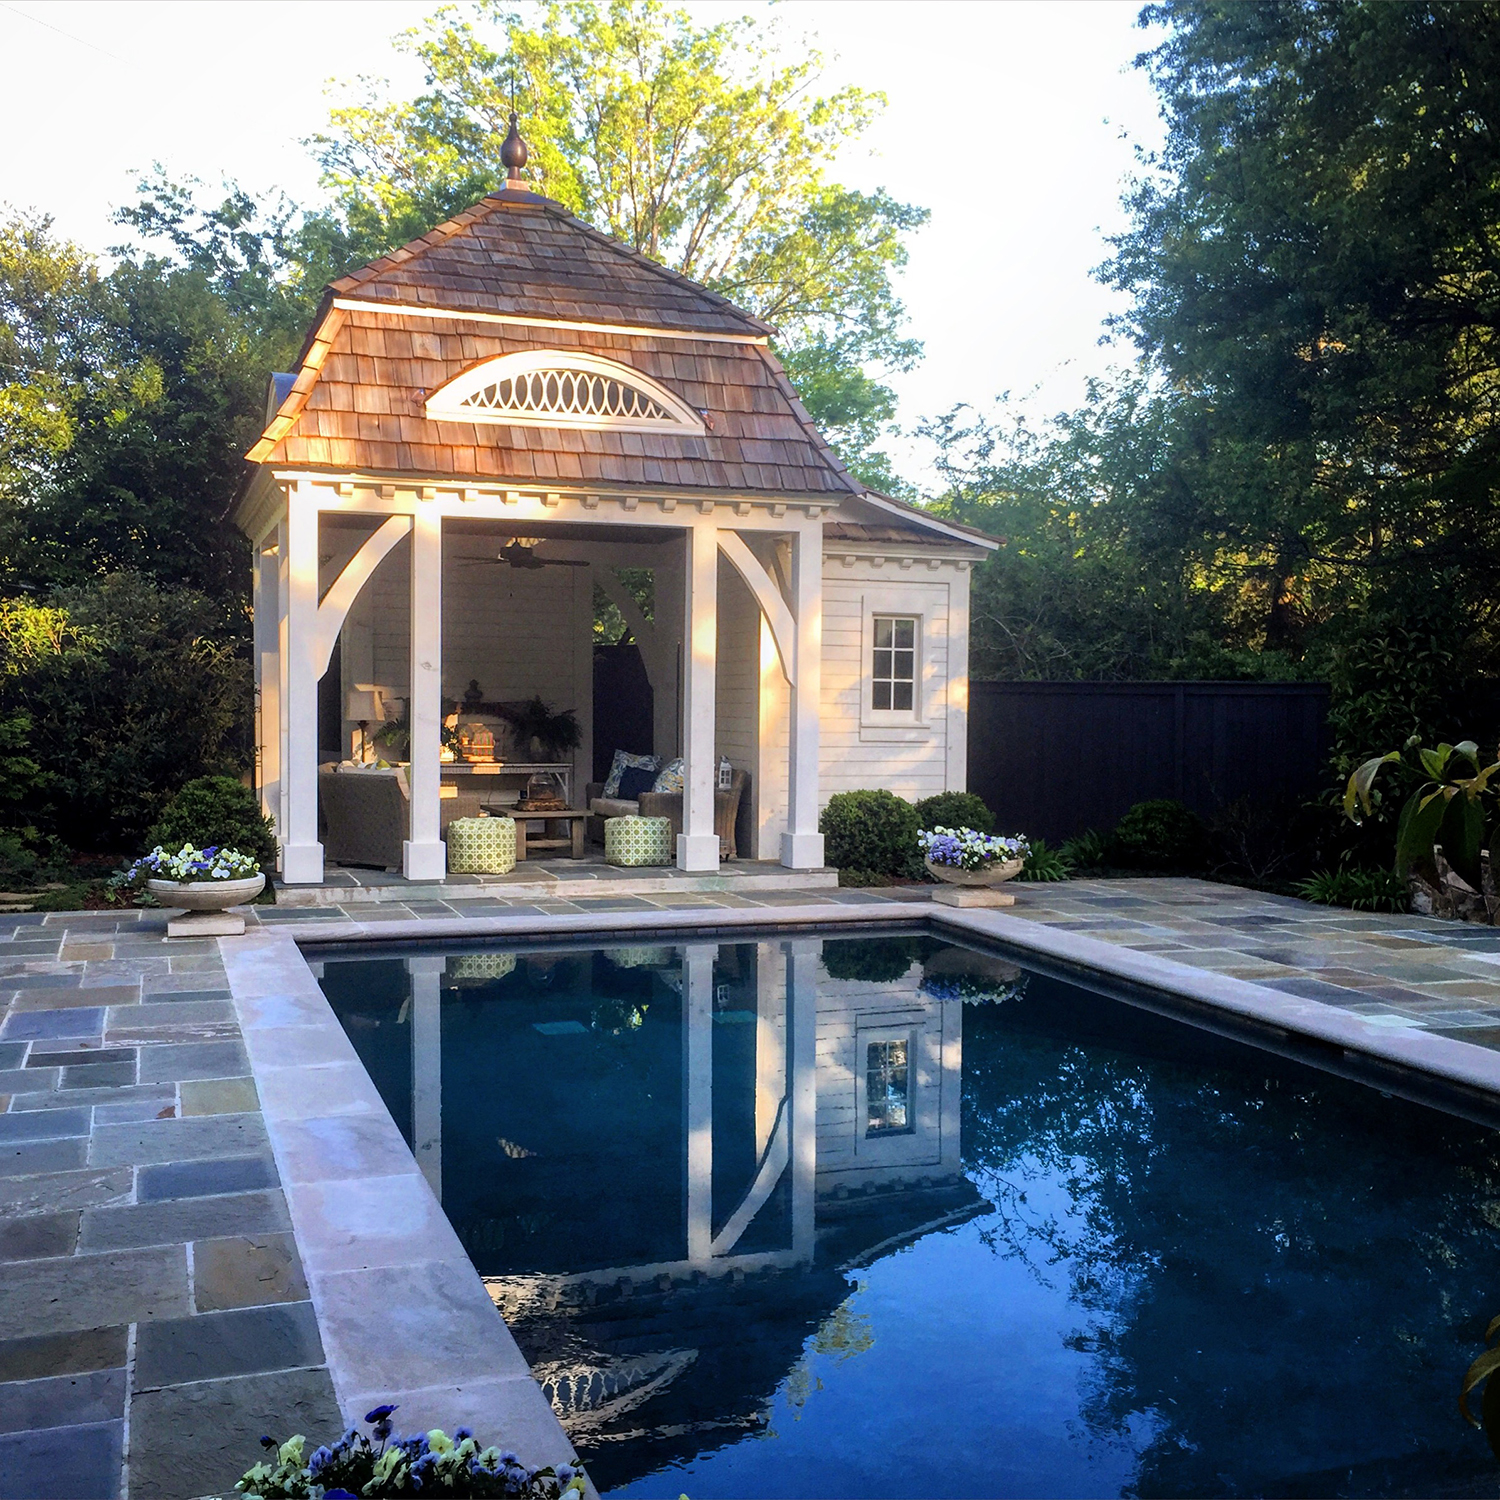 malaga_hollywood_homewood_cape_cod_inspired_poolhouse_02_pool_house_pavillion_mansard_cedar_shake_roof_timber_frame_bluestone_1500.jpg